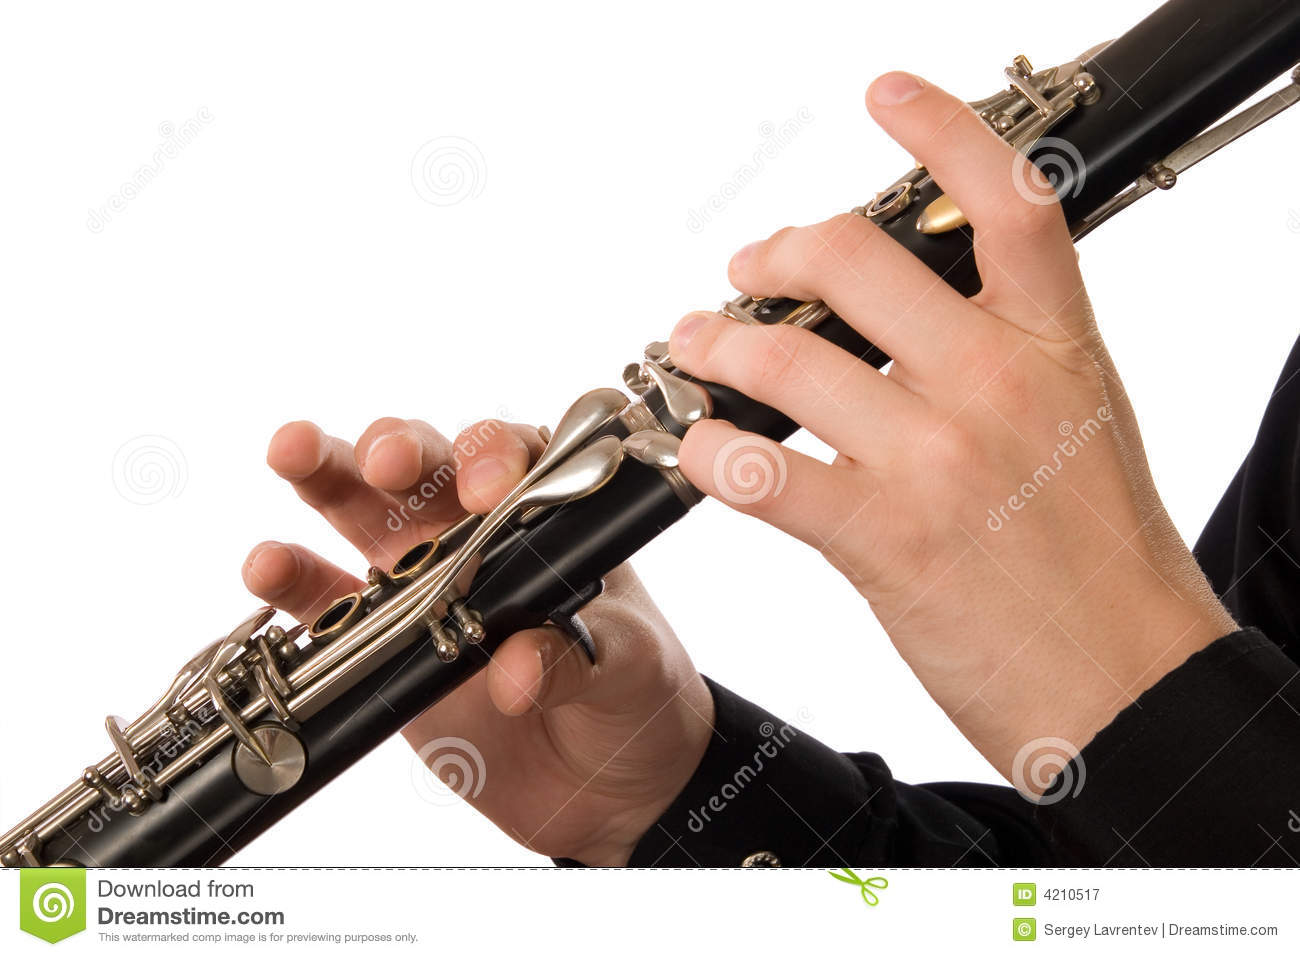 techniques used by clarinet players The clarinet is a type of woodwind instrument the name derives from adding the suffix -et (meaning little) to the italian word clarino (meaning a type of trumpet designed for high-register playing), as the first clarinets had a strident tone similar to that of a trumpet.